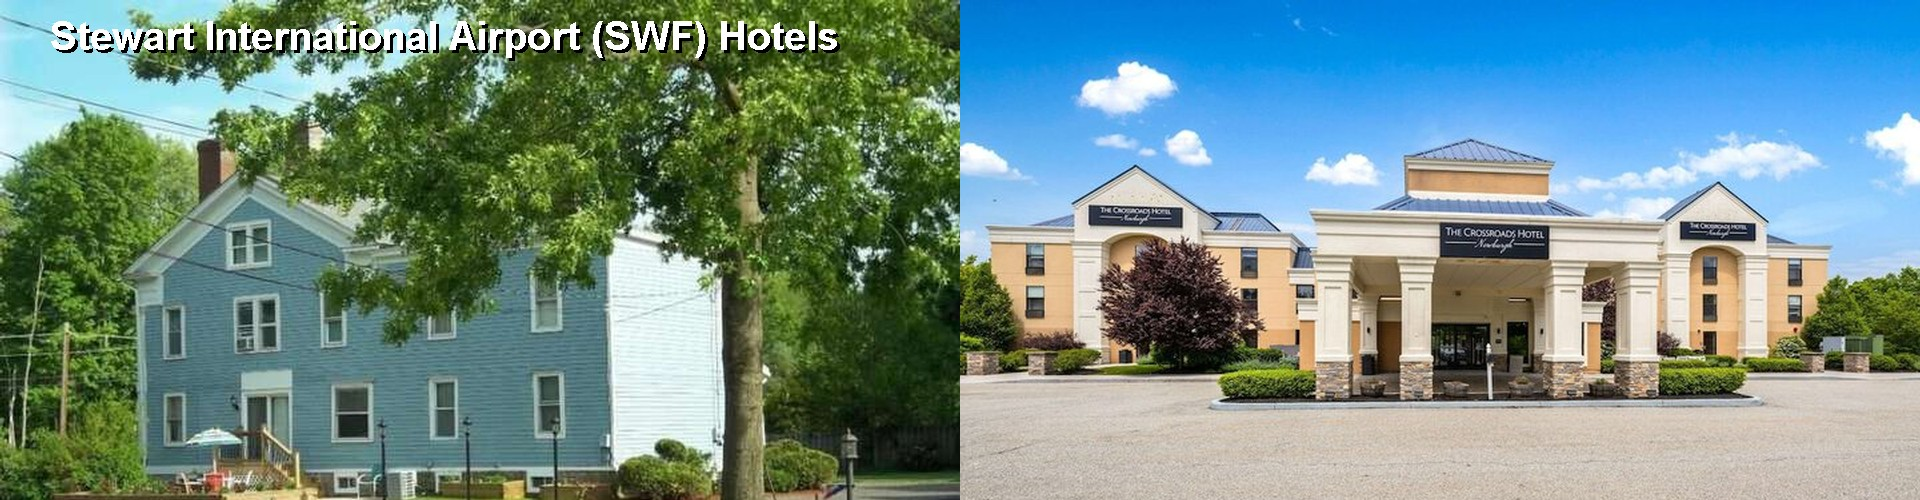 5 Best Hotels near Stewart International Airport (SWF)